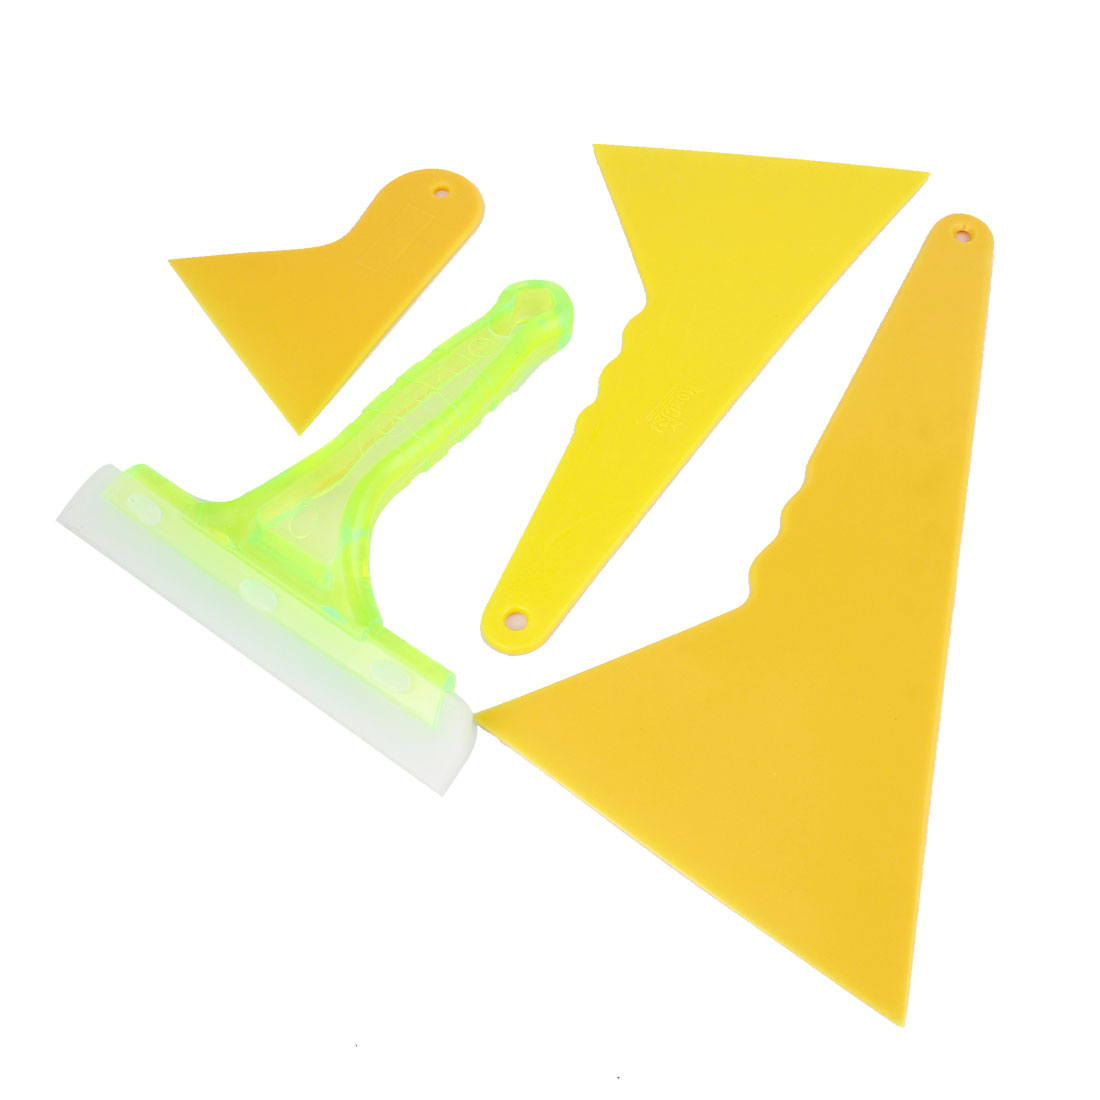 4 in 1 Auto Yellow Plastic Window Windshield Tint Film Scraper Cleaner Tool Set